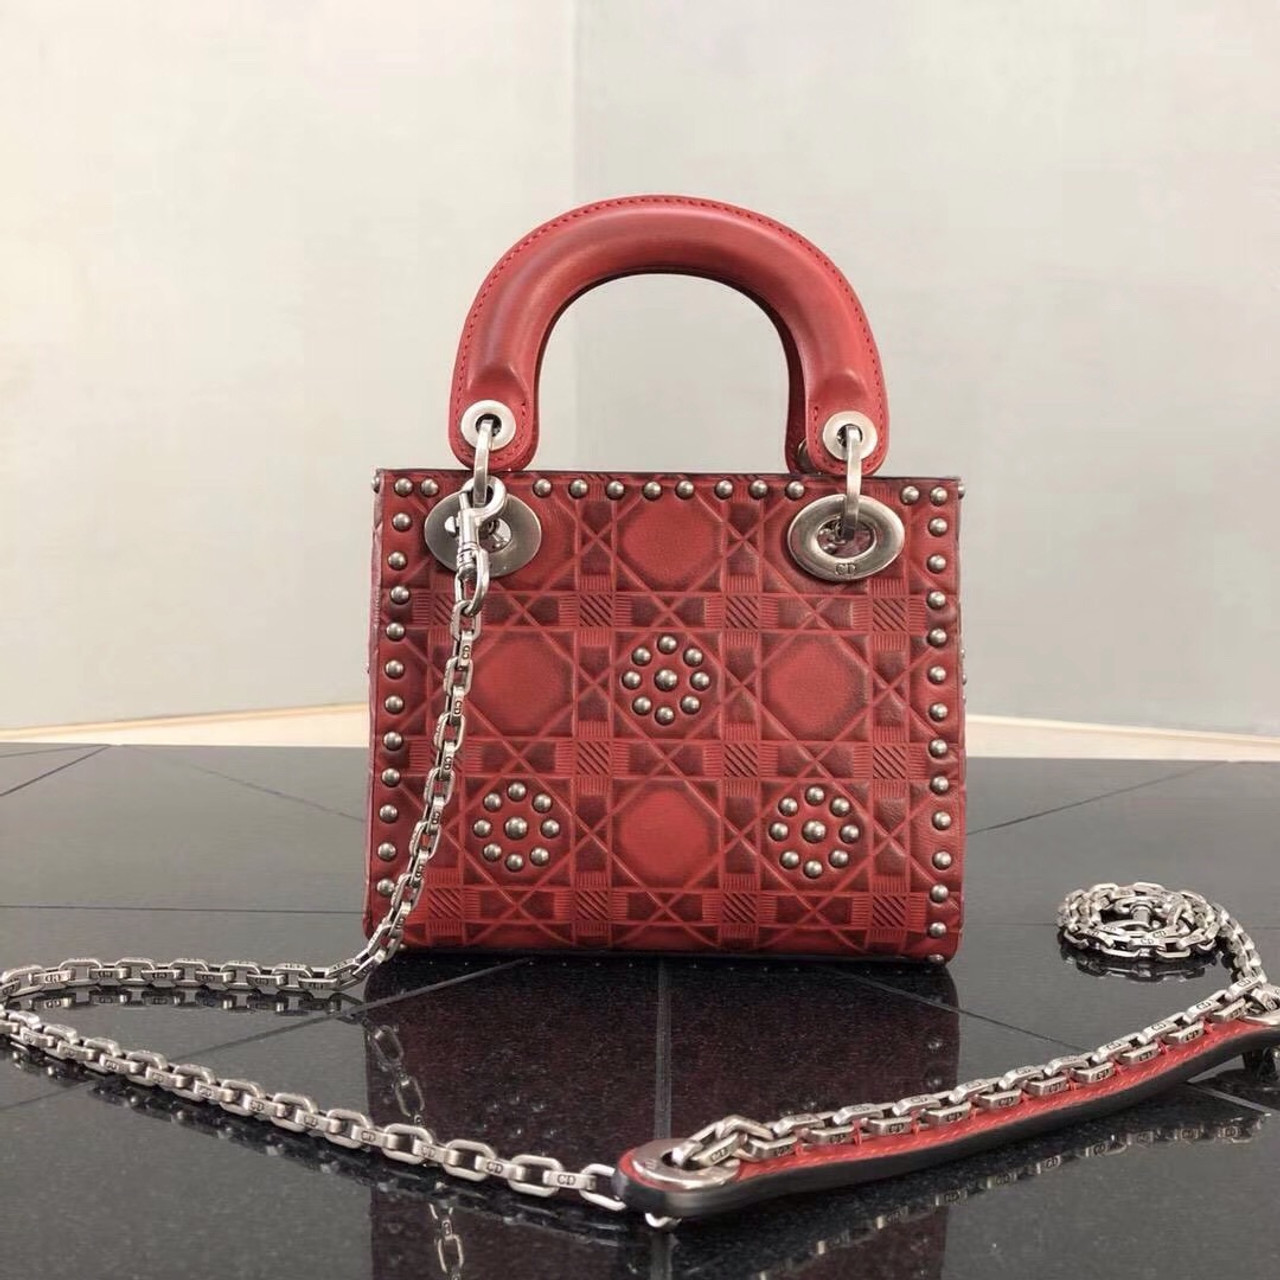 d5df5e5cf2d3 Christian Dior Cruise 2018 MINI LADY DIOR BAG IN RED STUDDED CALFSKIN